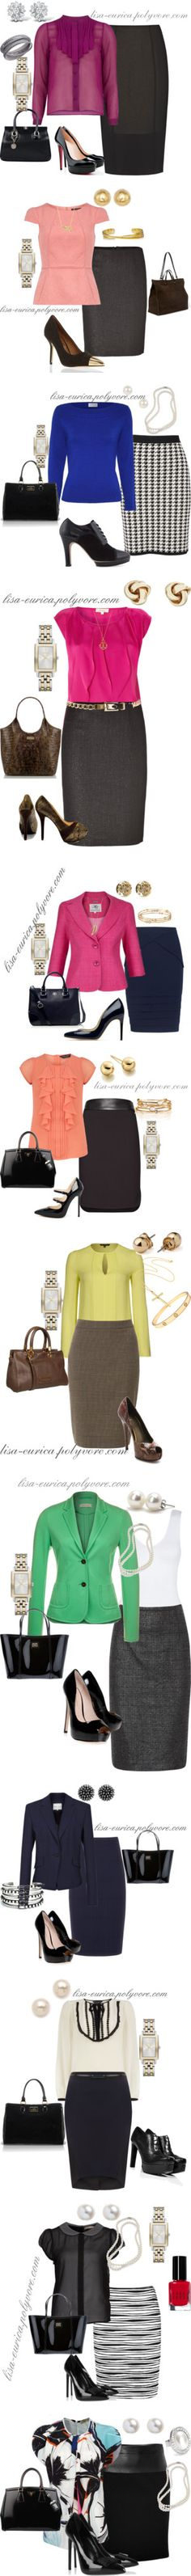 """""""Pencil Skirt - Work Chic"""" by lisa-eurica on Polyvore"""